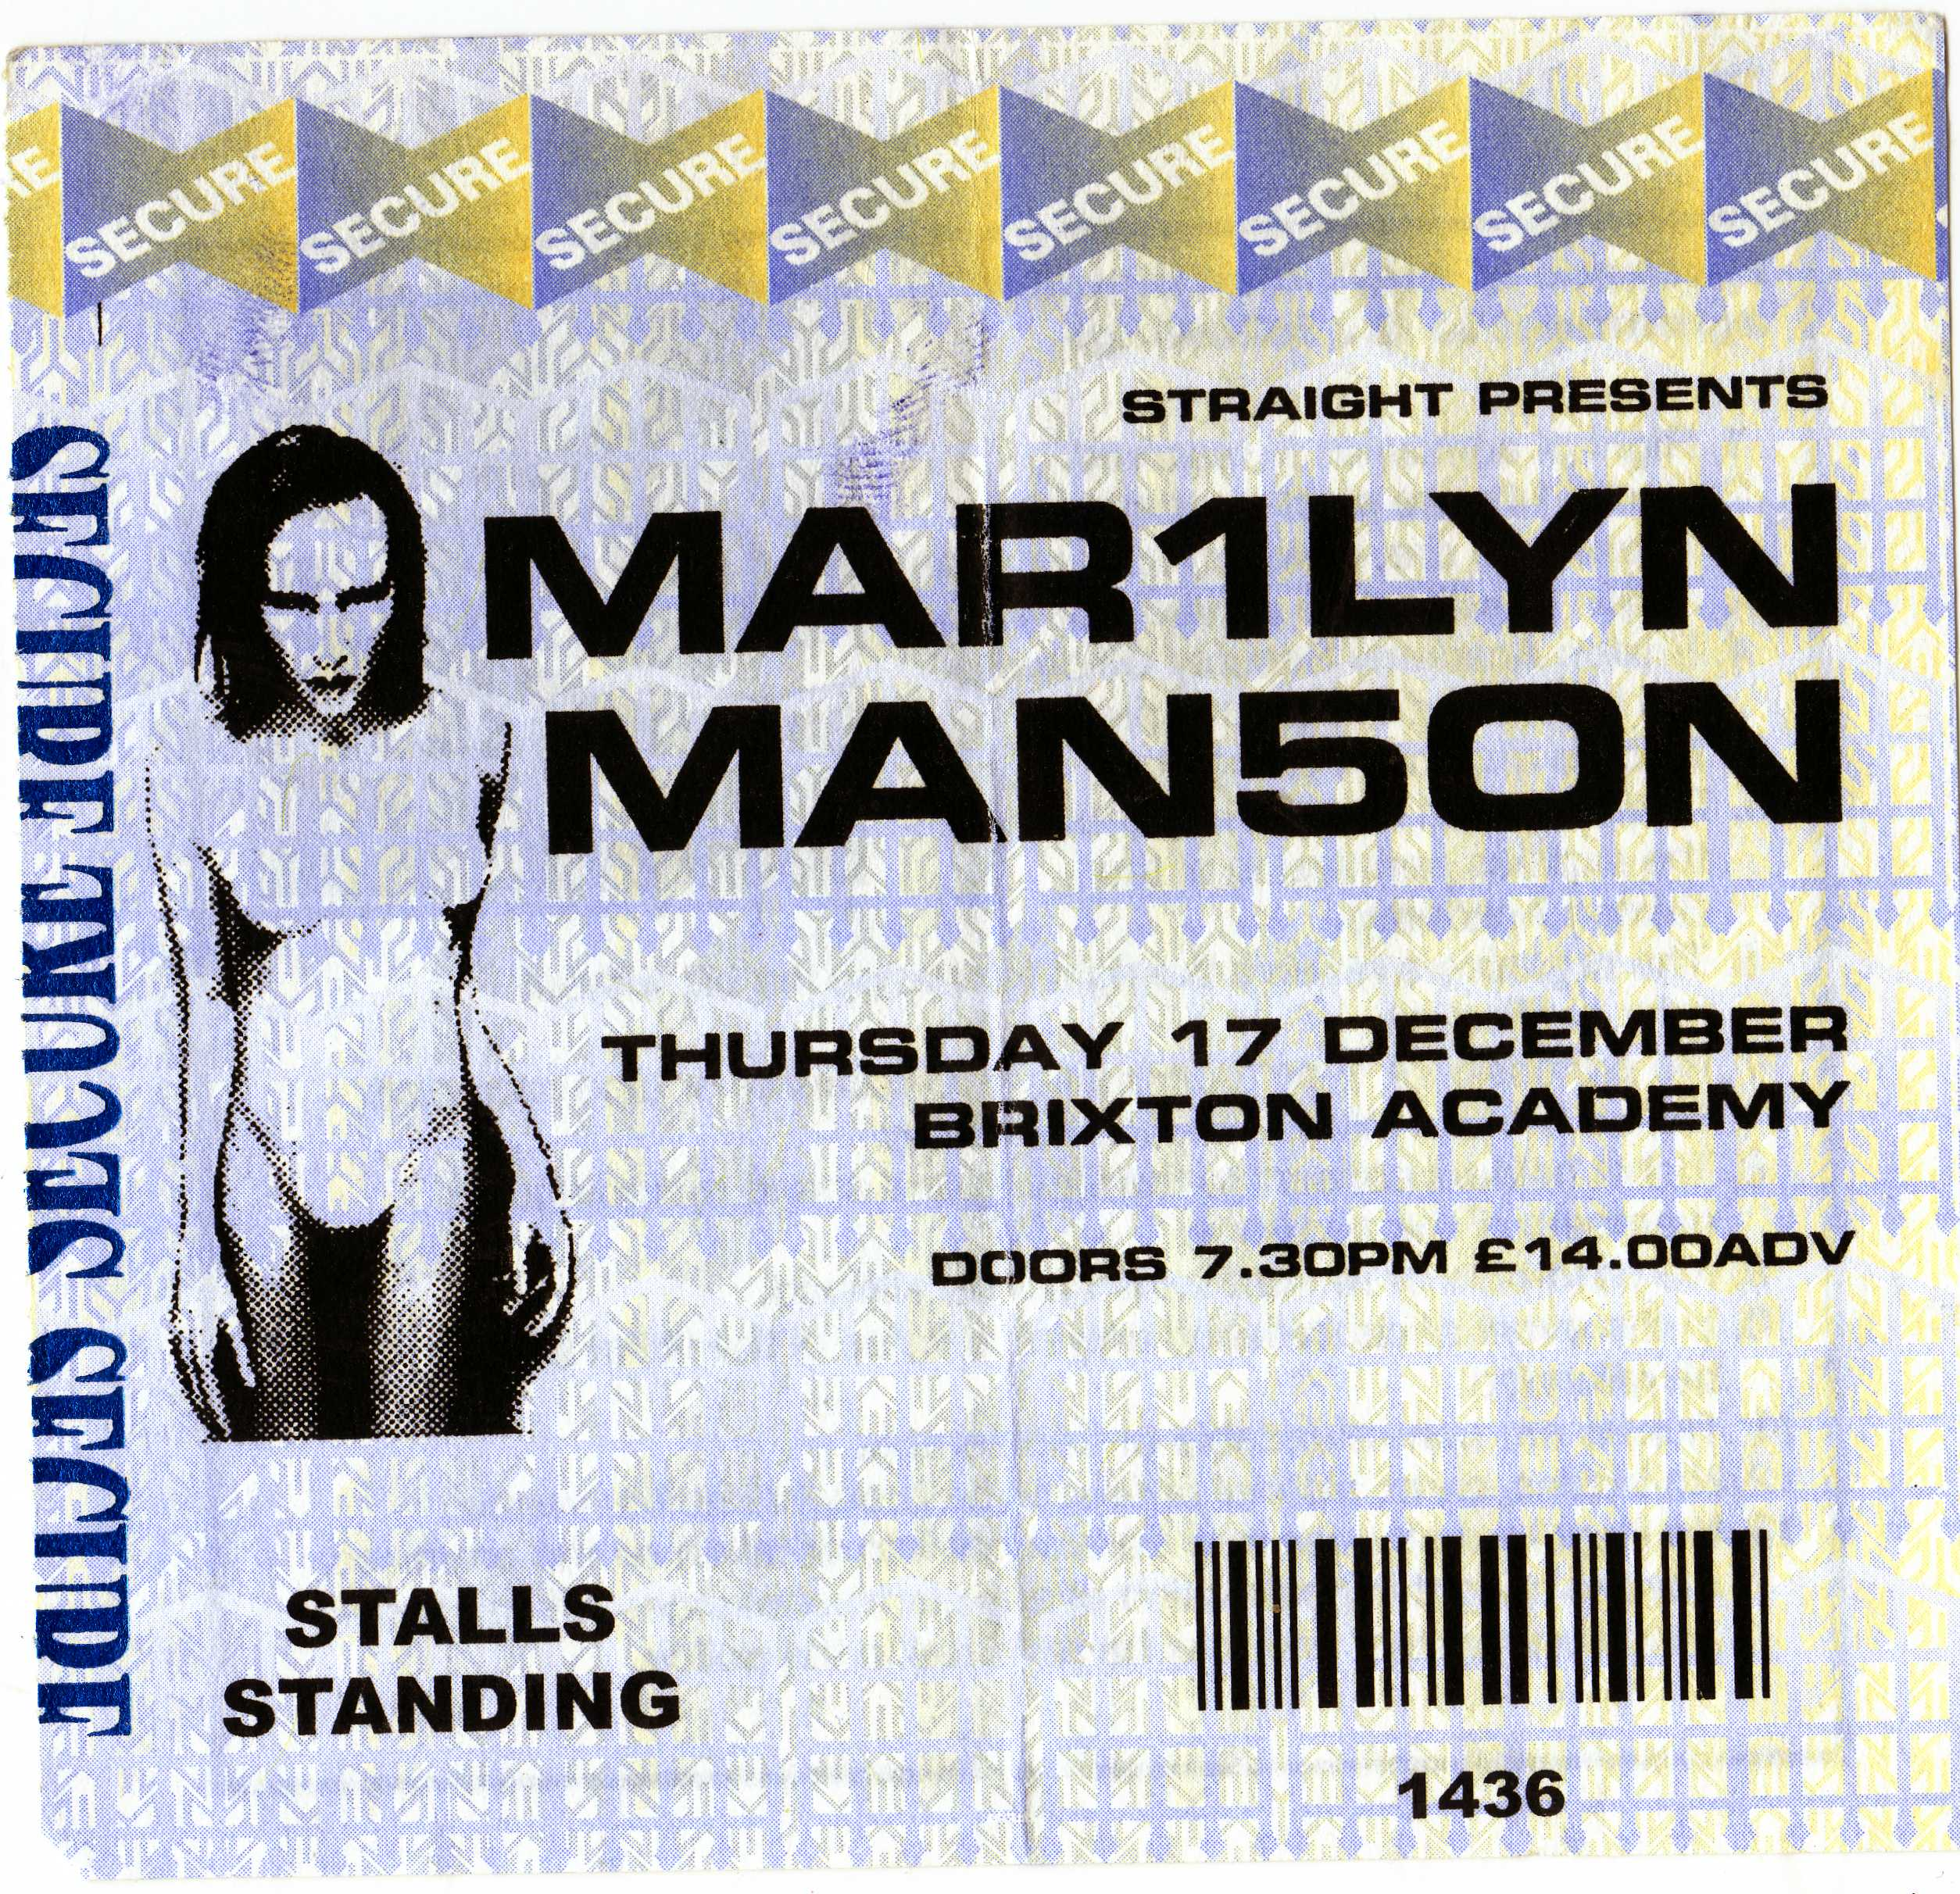 December 17, 1998 performance at The Brixton Academy in London, England.